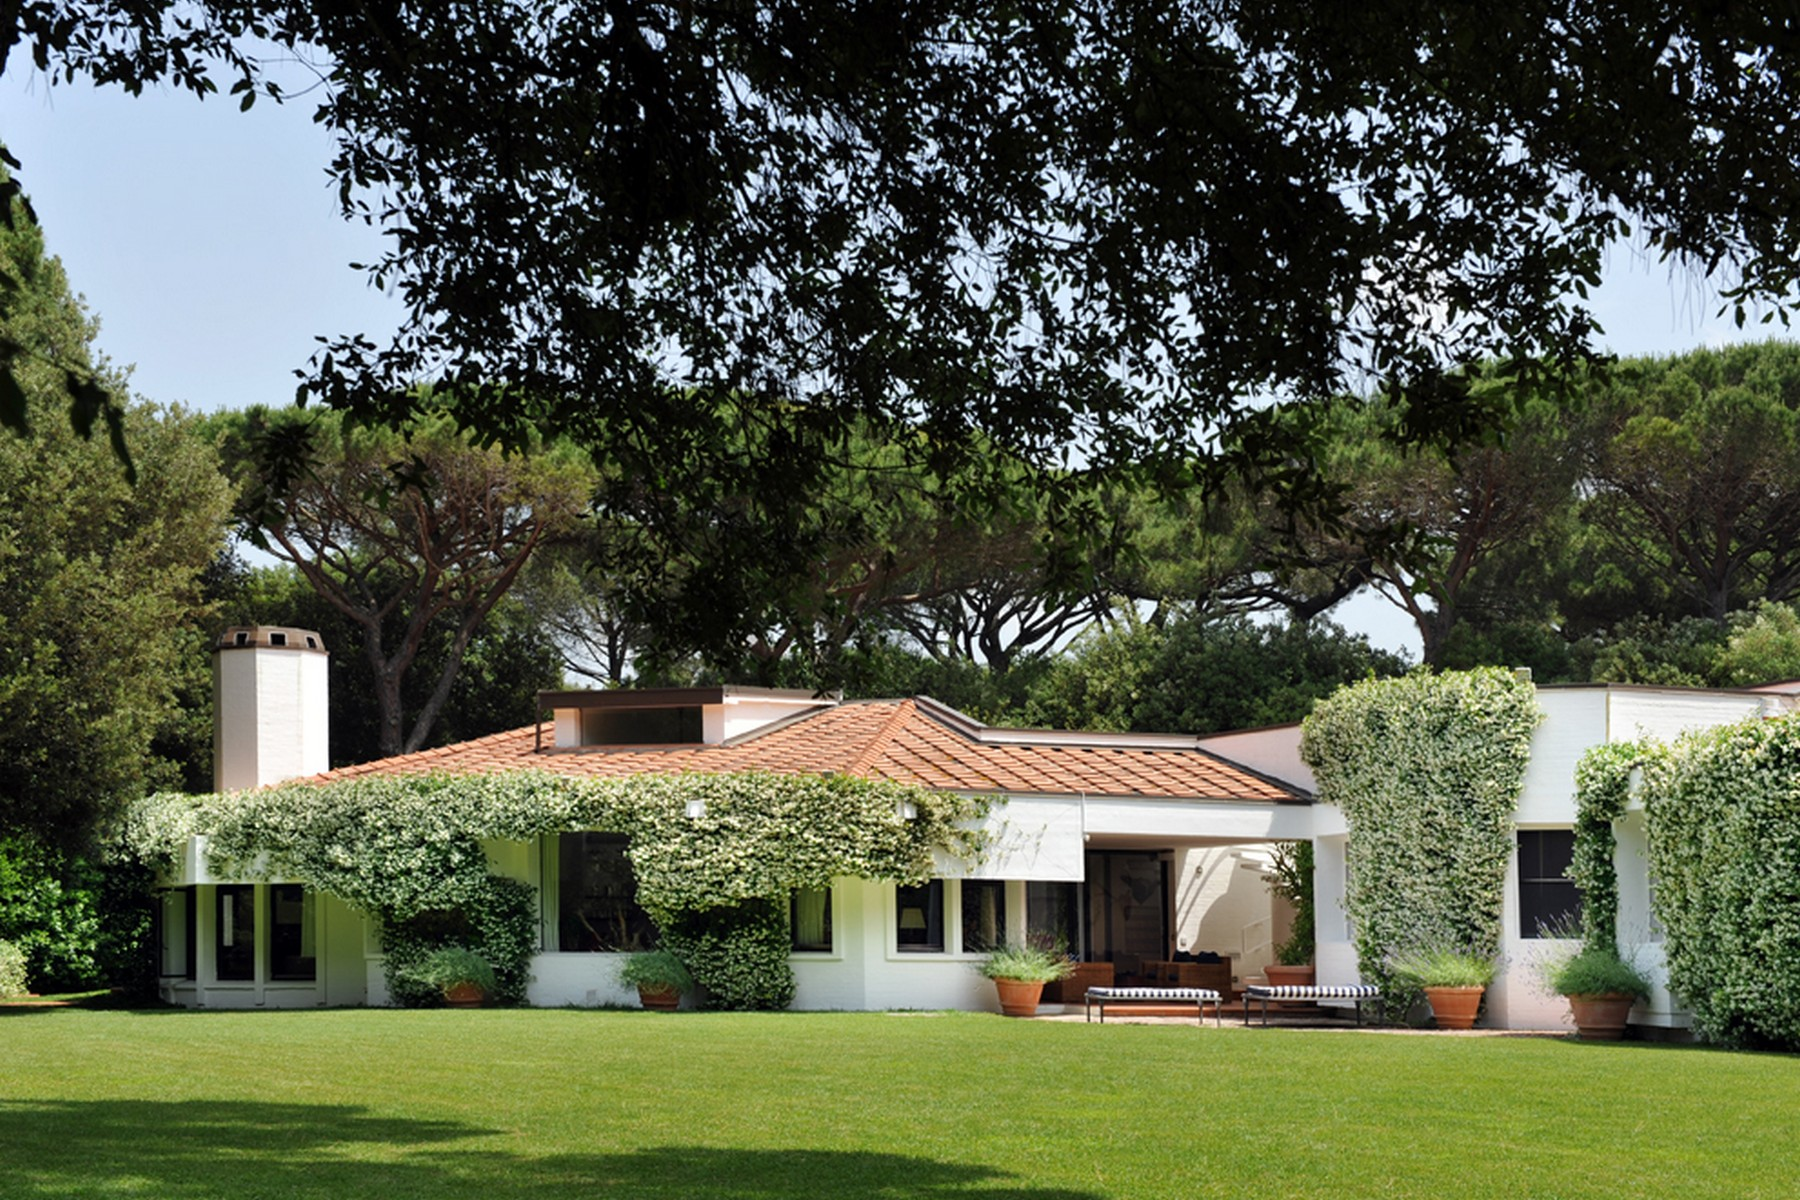 Other Residential for Sale at Stately estate with private beach Bolgheri Bolgheri, Livorno, 57020 Italy